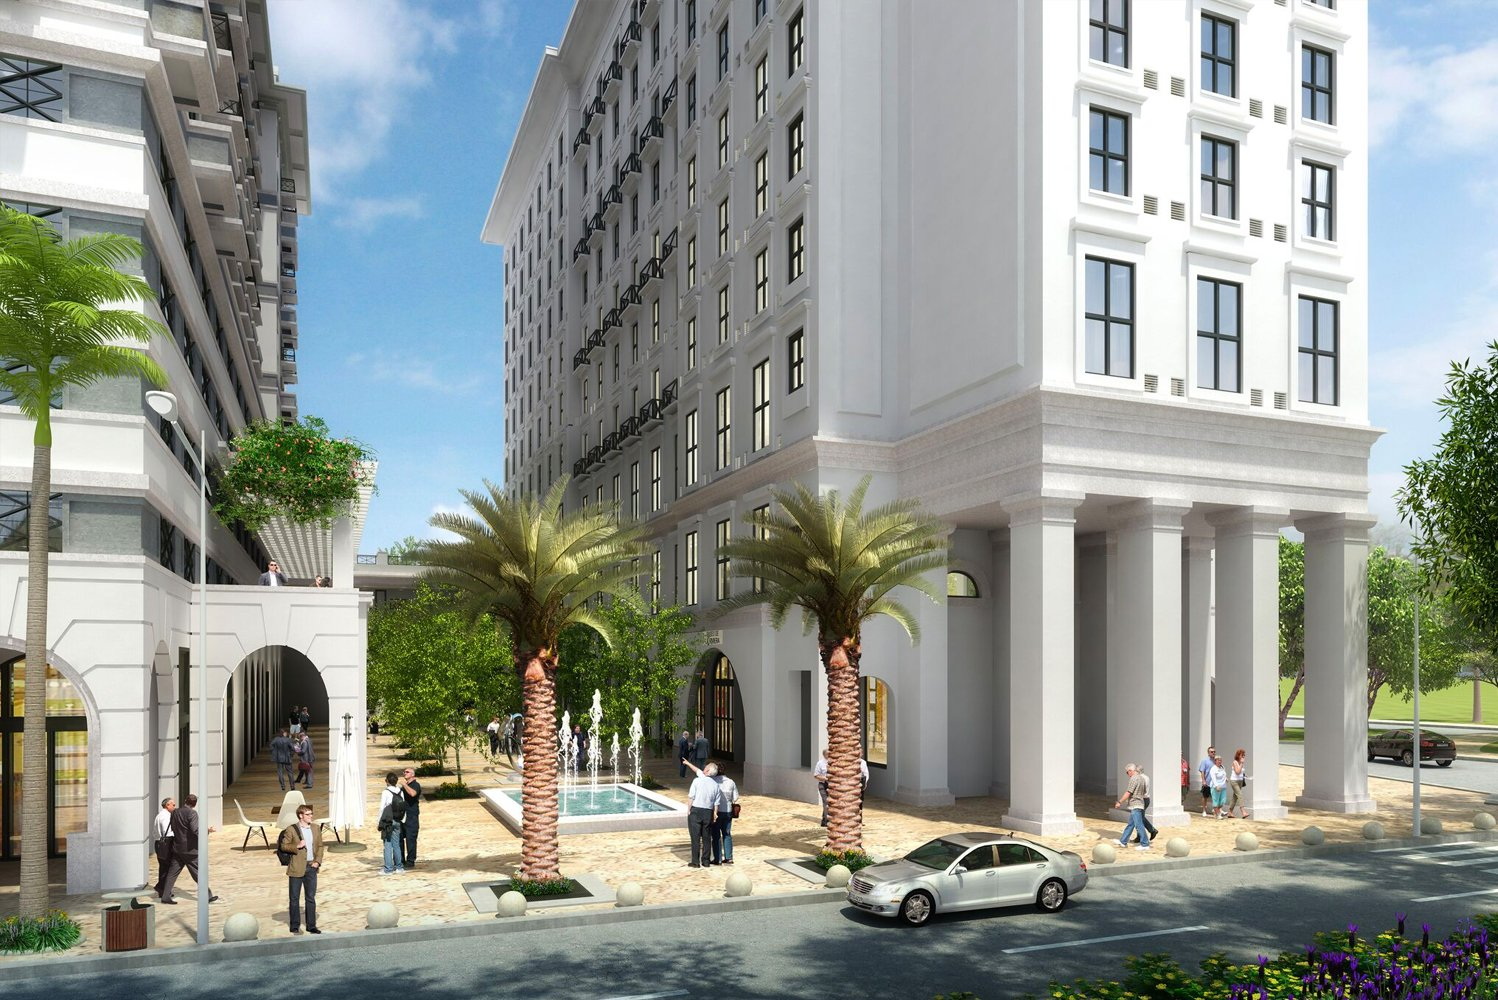 Nolan Reynolds International launched THēsis Hotels with its first property set to open in Coral Gables, Florida this March.